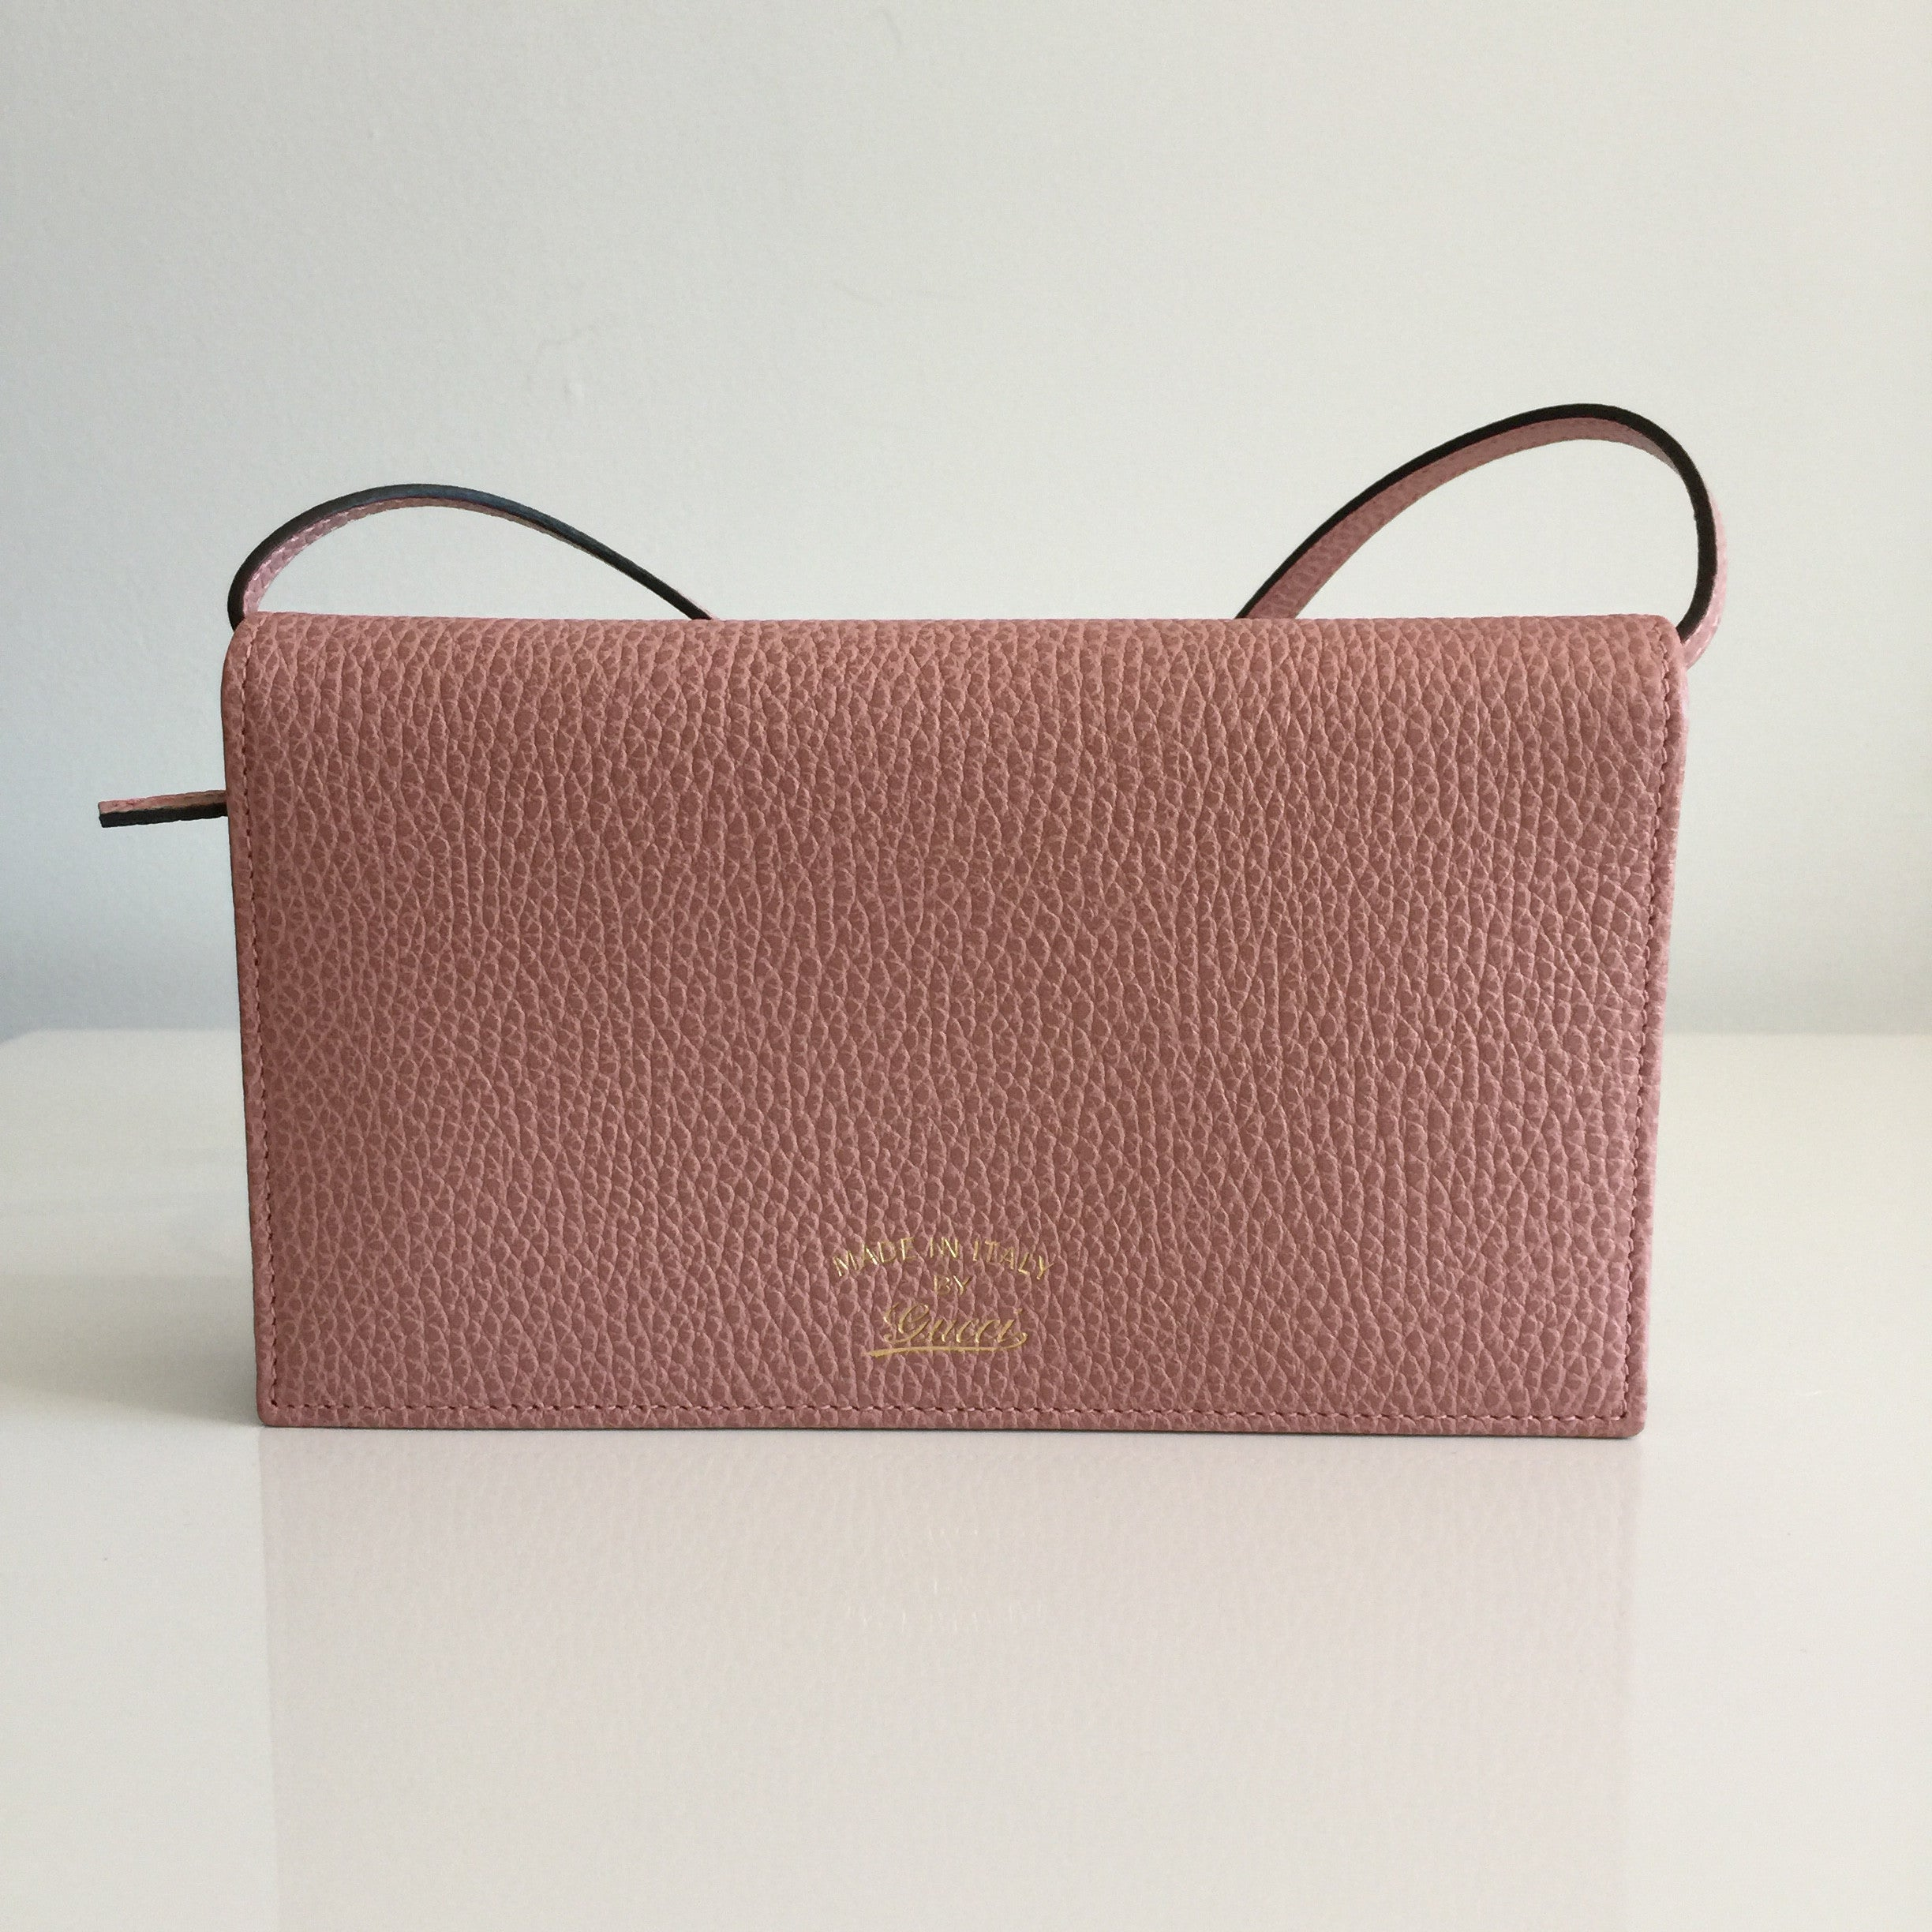 Authentic GUCCI Rose Swing Wallet on Strap